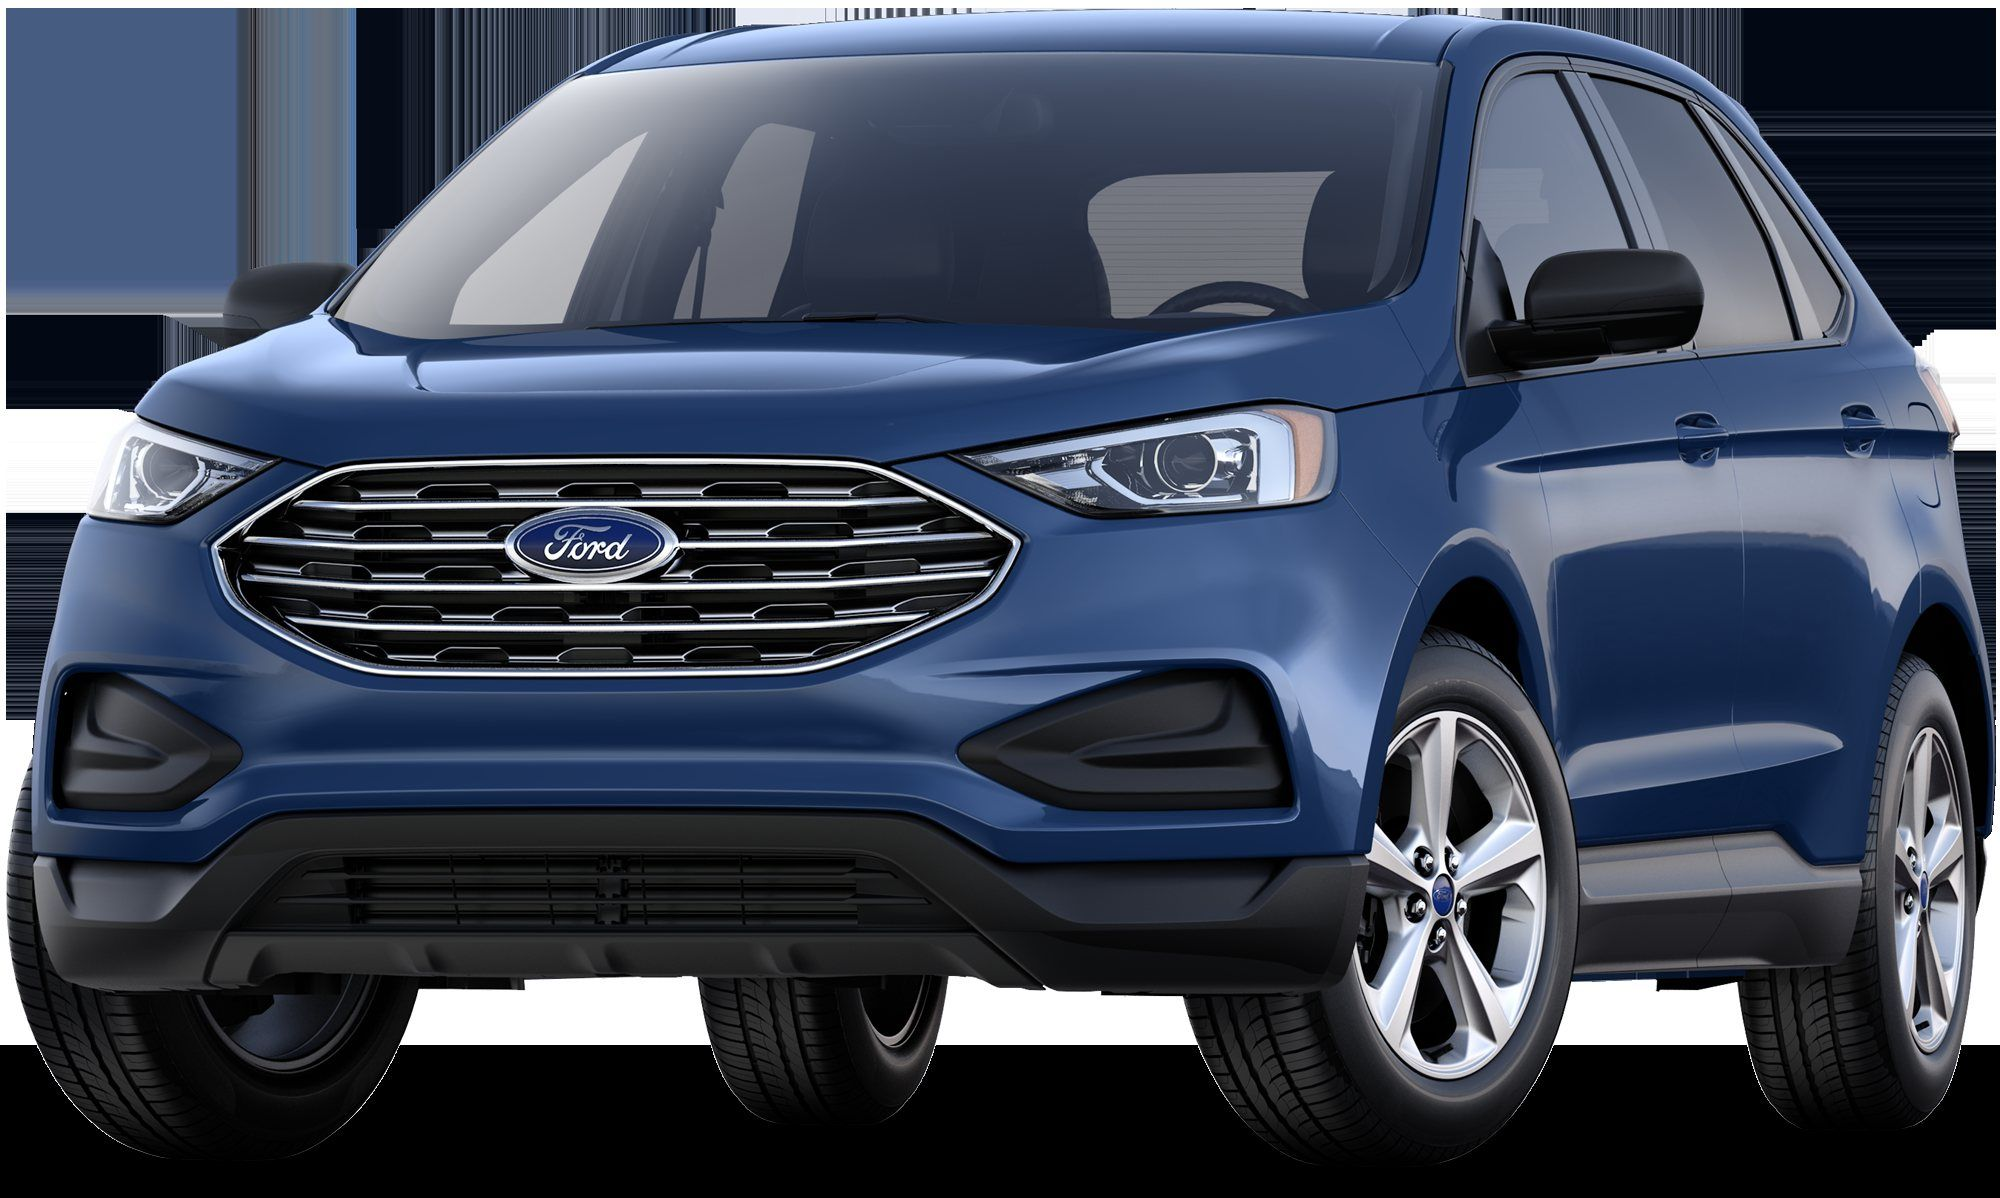 2021 ford Edge Configurations in 2020 Ford edge, Ford